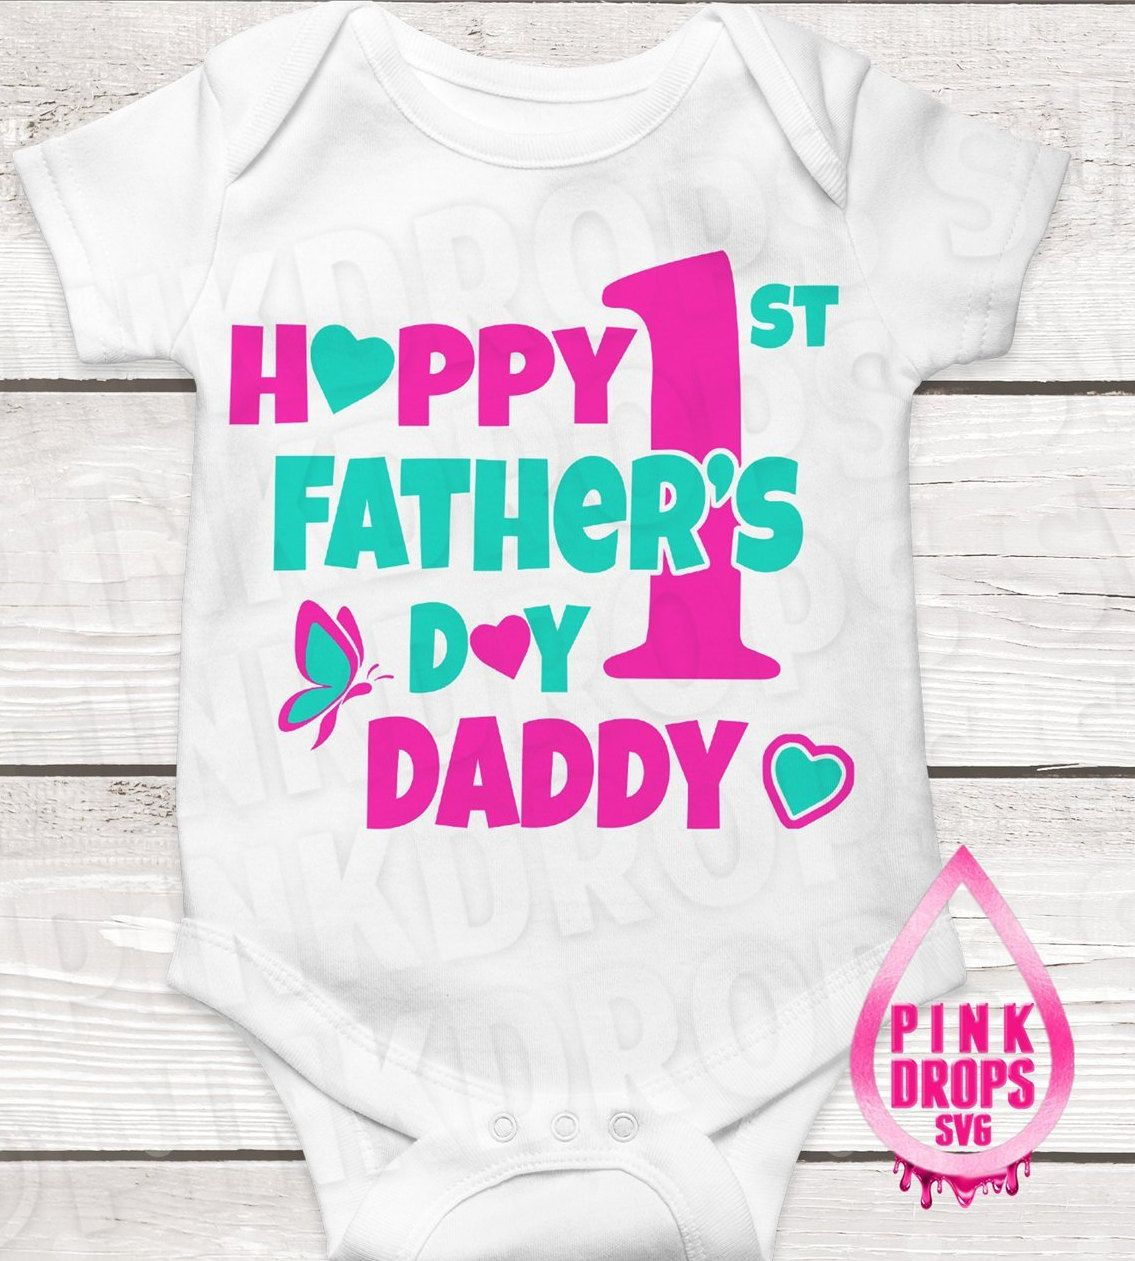 Free It's a chance for you to say thank you to your grandfather, your i don't know about your dad, but mine brushes off all our attempts to thank him. 1st Fathers Day Baby Girl Svg First Fathers Day Svg Our First Fathers Day Daughter Happy Fathers Day Gift New Baby Products Baby Girl Svg First Fathers Day SVG, PNG, EPS, DXF File